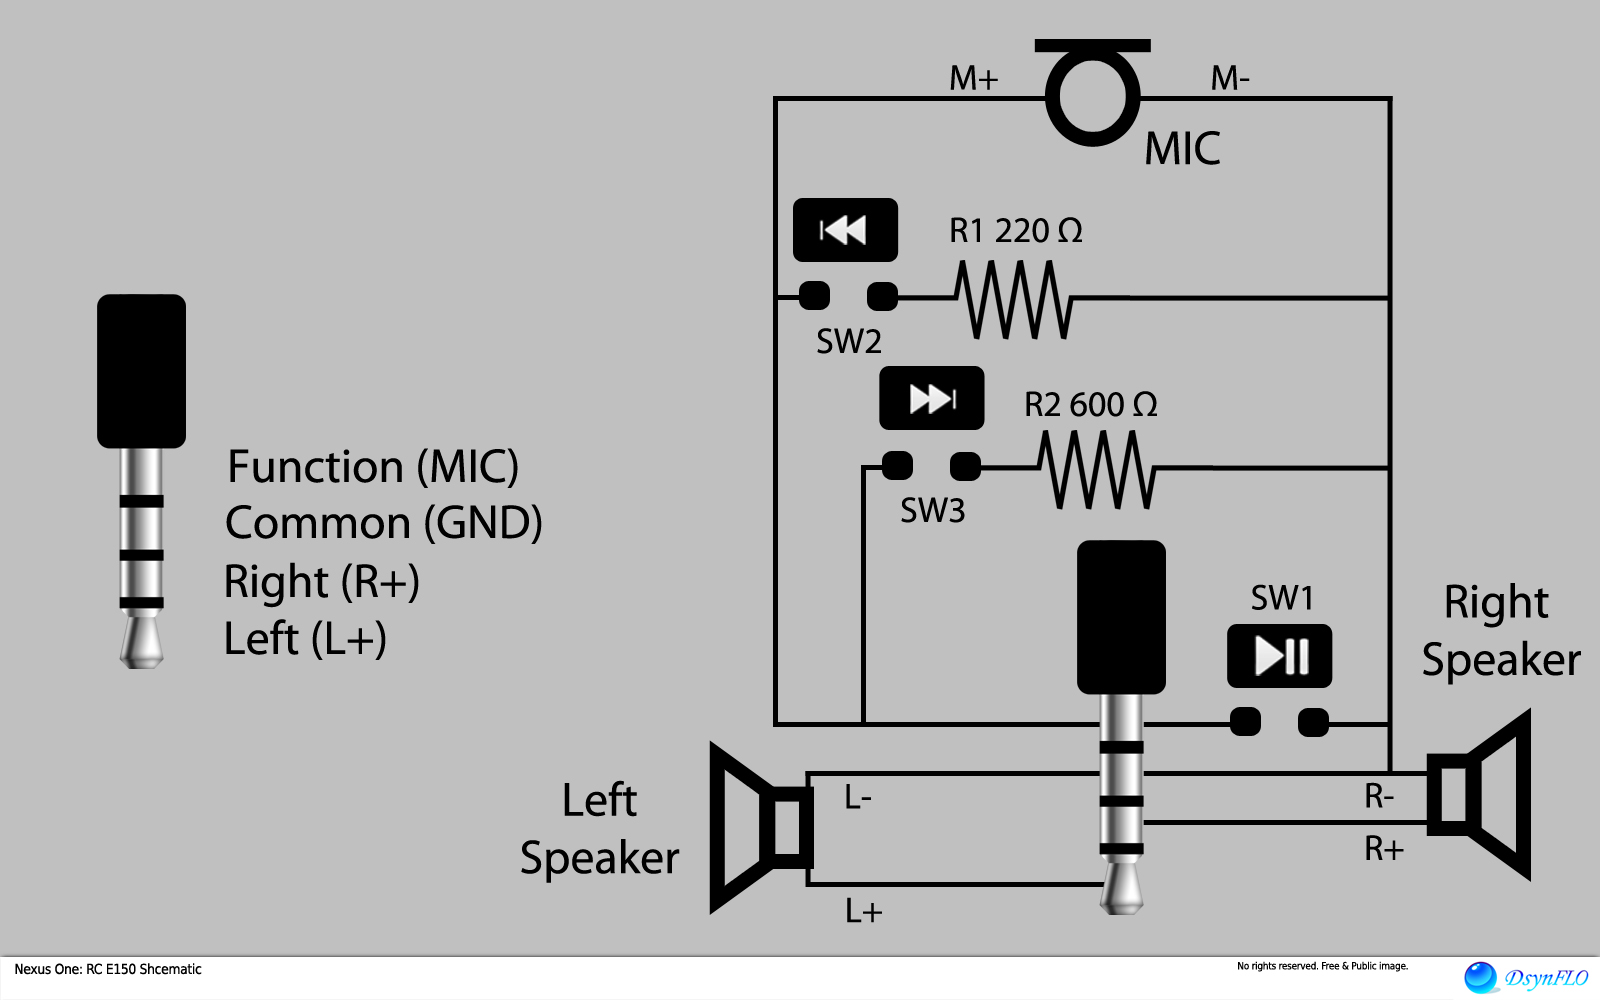 Microphone Pinouts Wiring And Connection Diagram - WIRE Center •